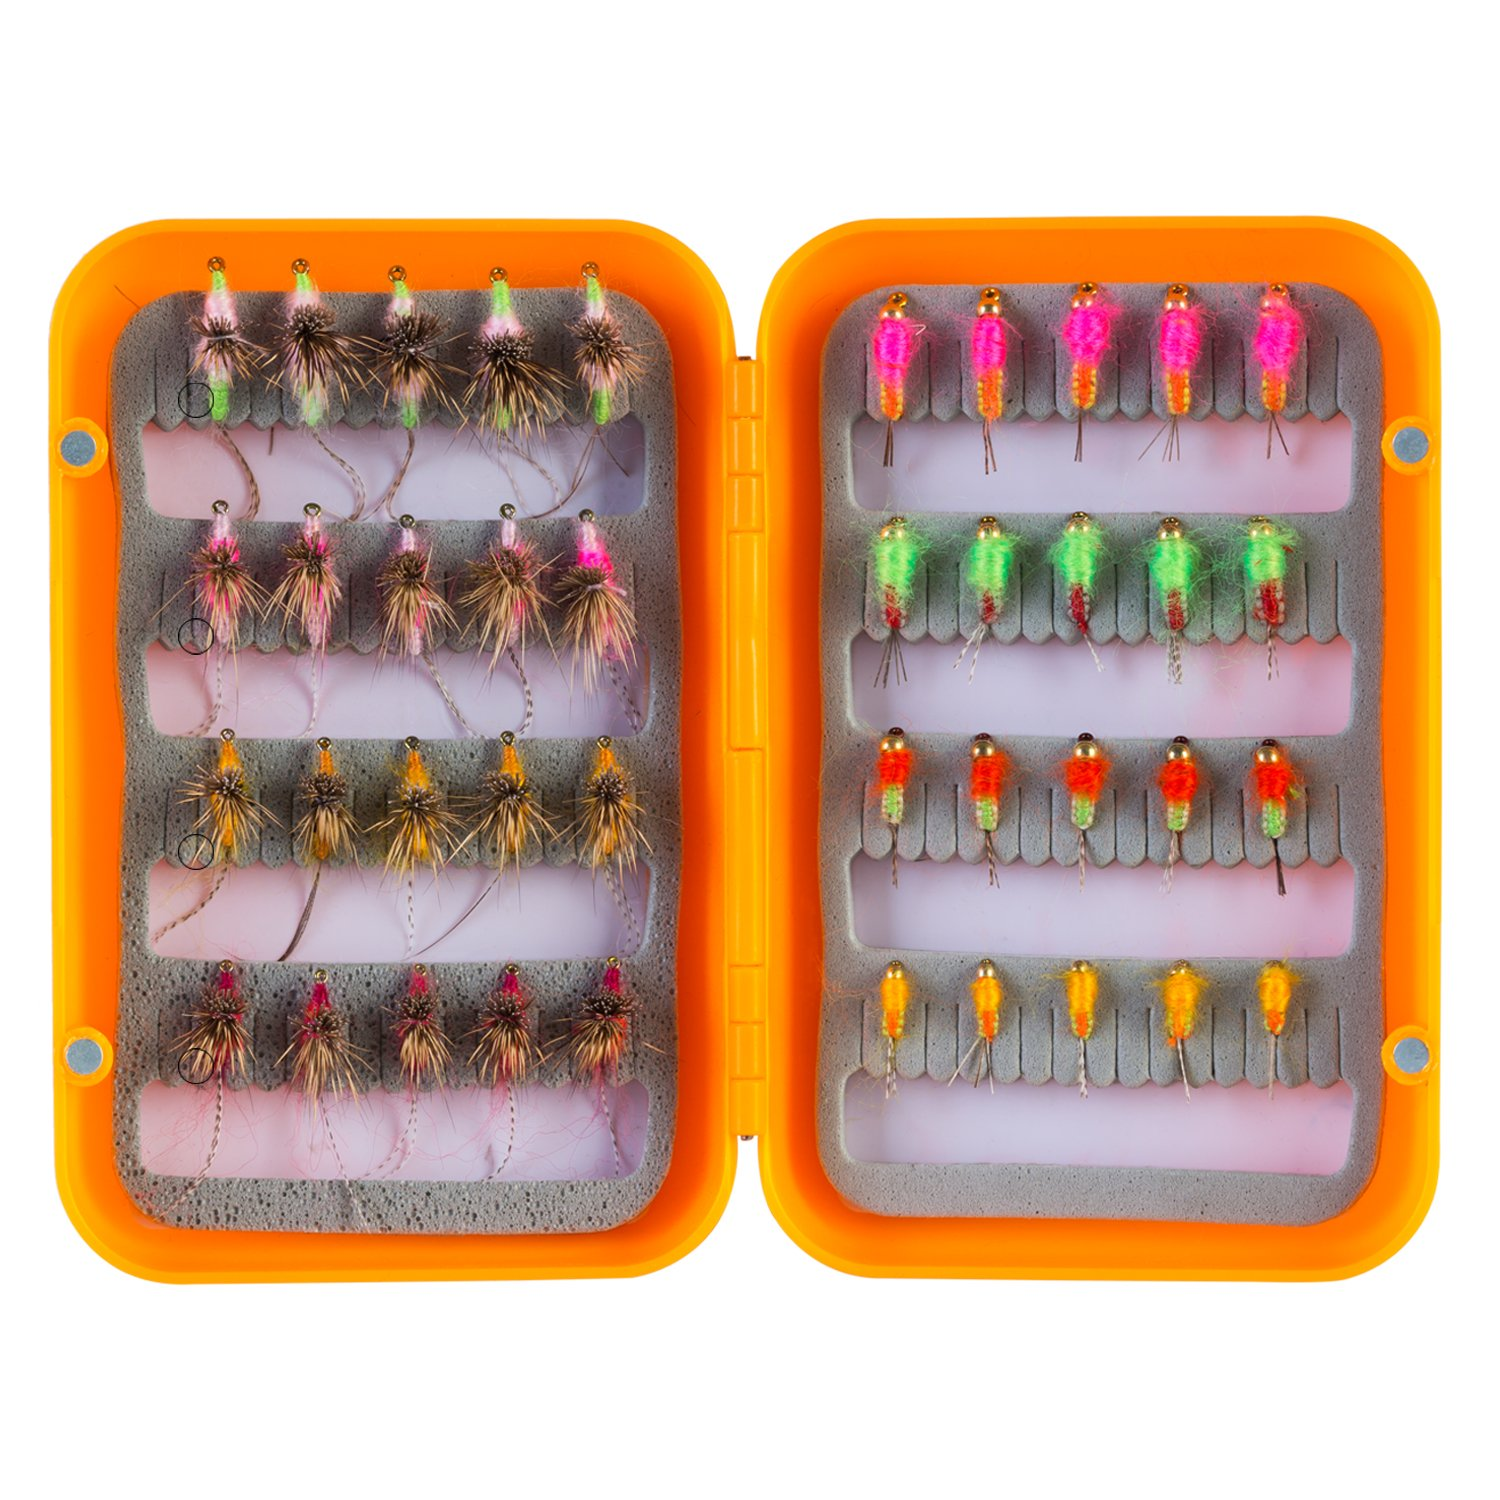 Piscifun 40pcs Wet Flies Fly Fishing Lures Bass Salmon Trouts Sinking Flies Assortment with Fly Box 10#,12#,14#,16# Hook